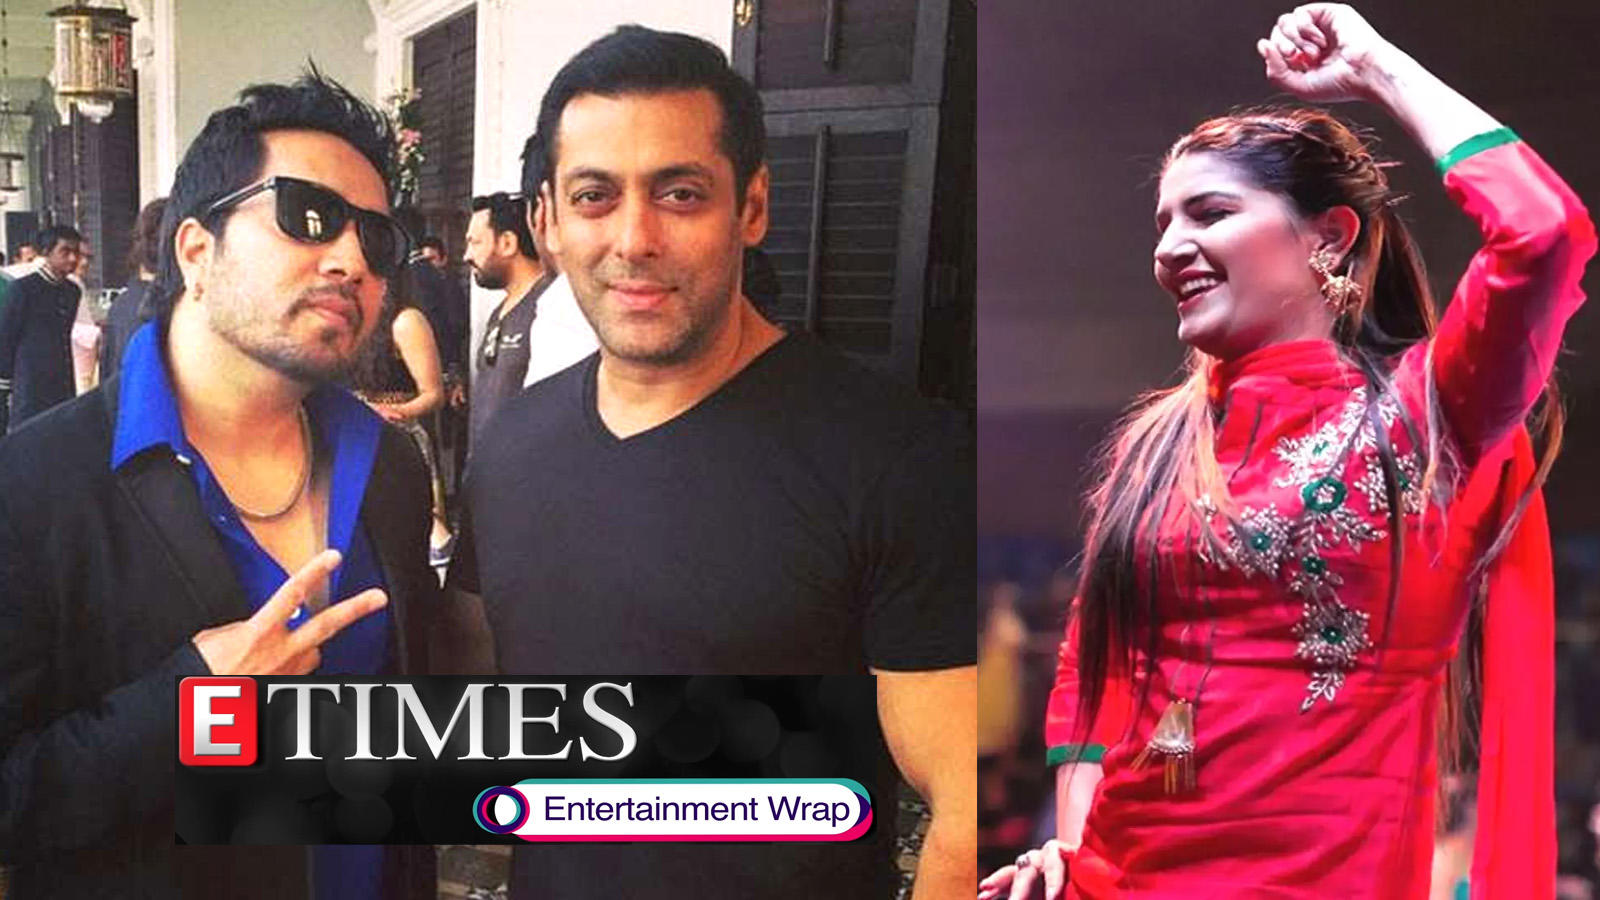 fwice-says-salman-khan-will-be-banned-if-he-performs-with-mika-singh-sapna-choudharys-hilarious-video-goes-viral-and-more